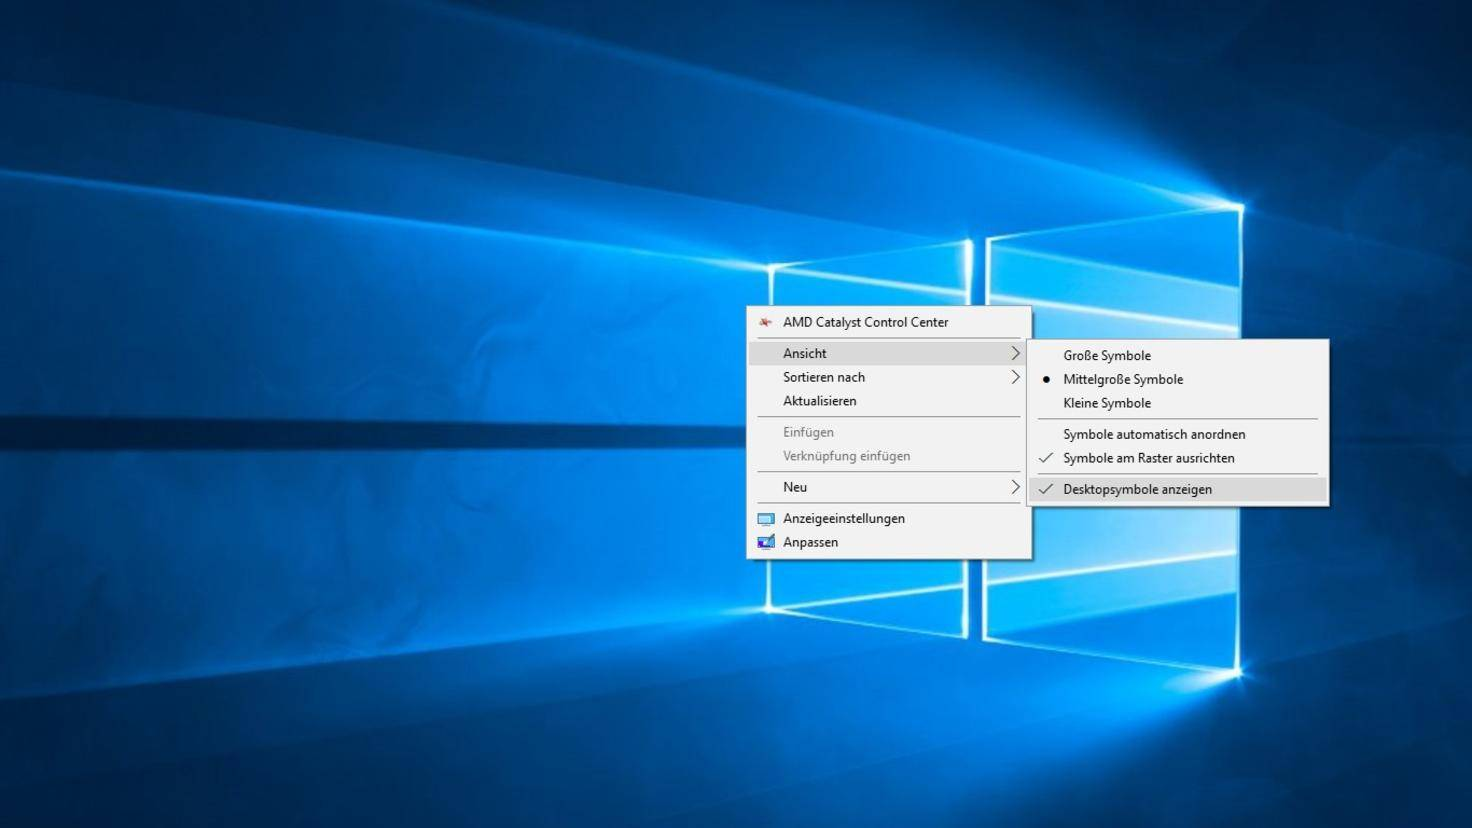 Windows 10 Desktopsymbole ausblenden